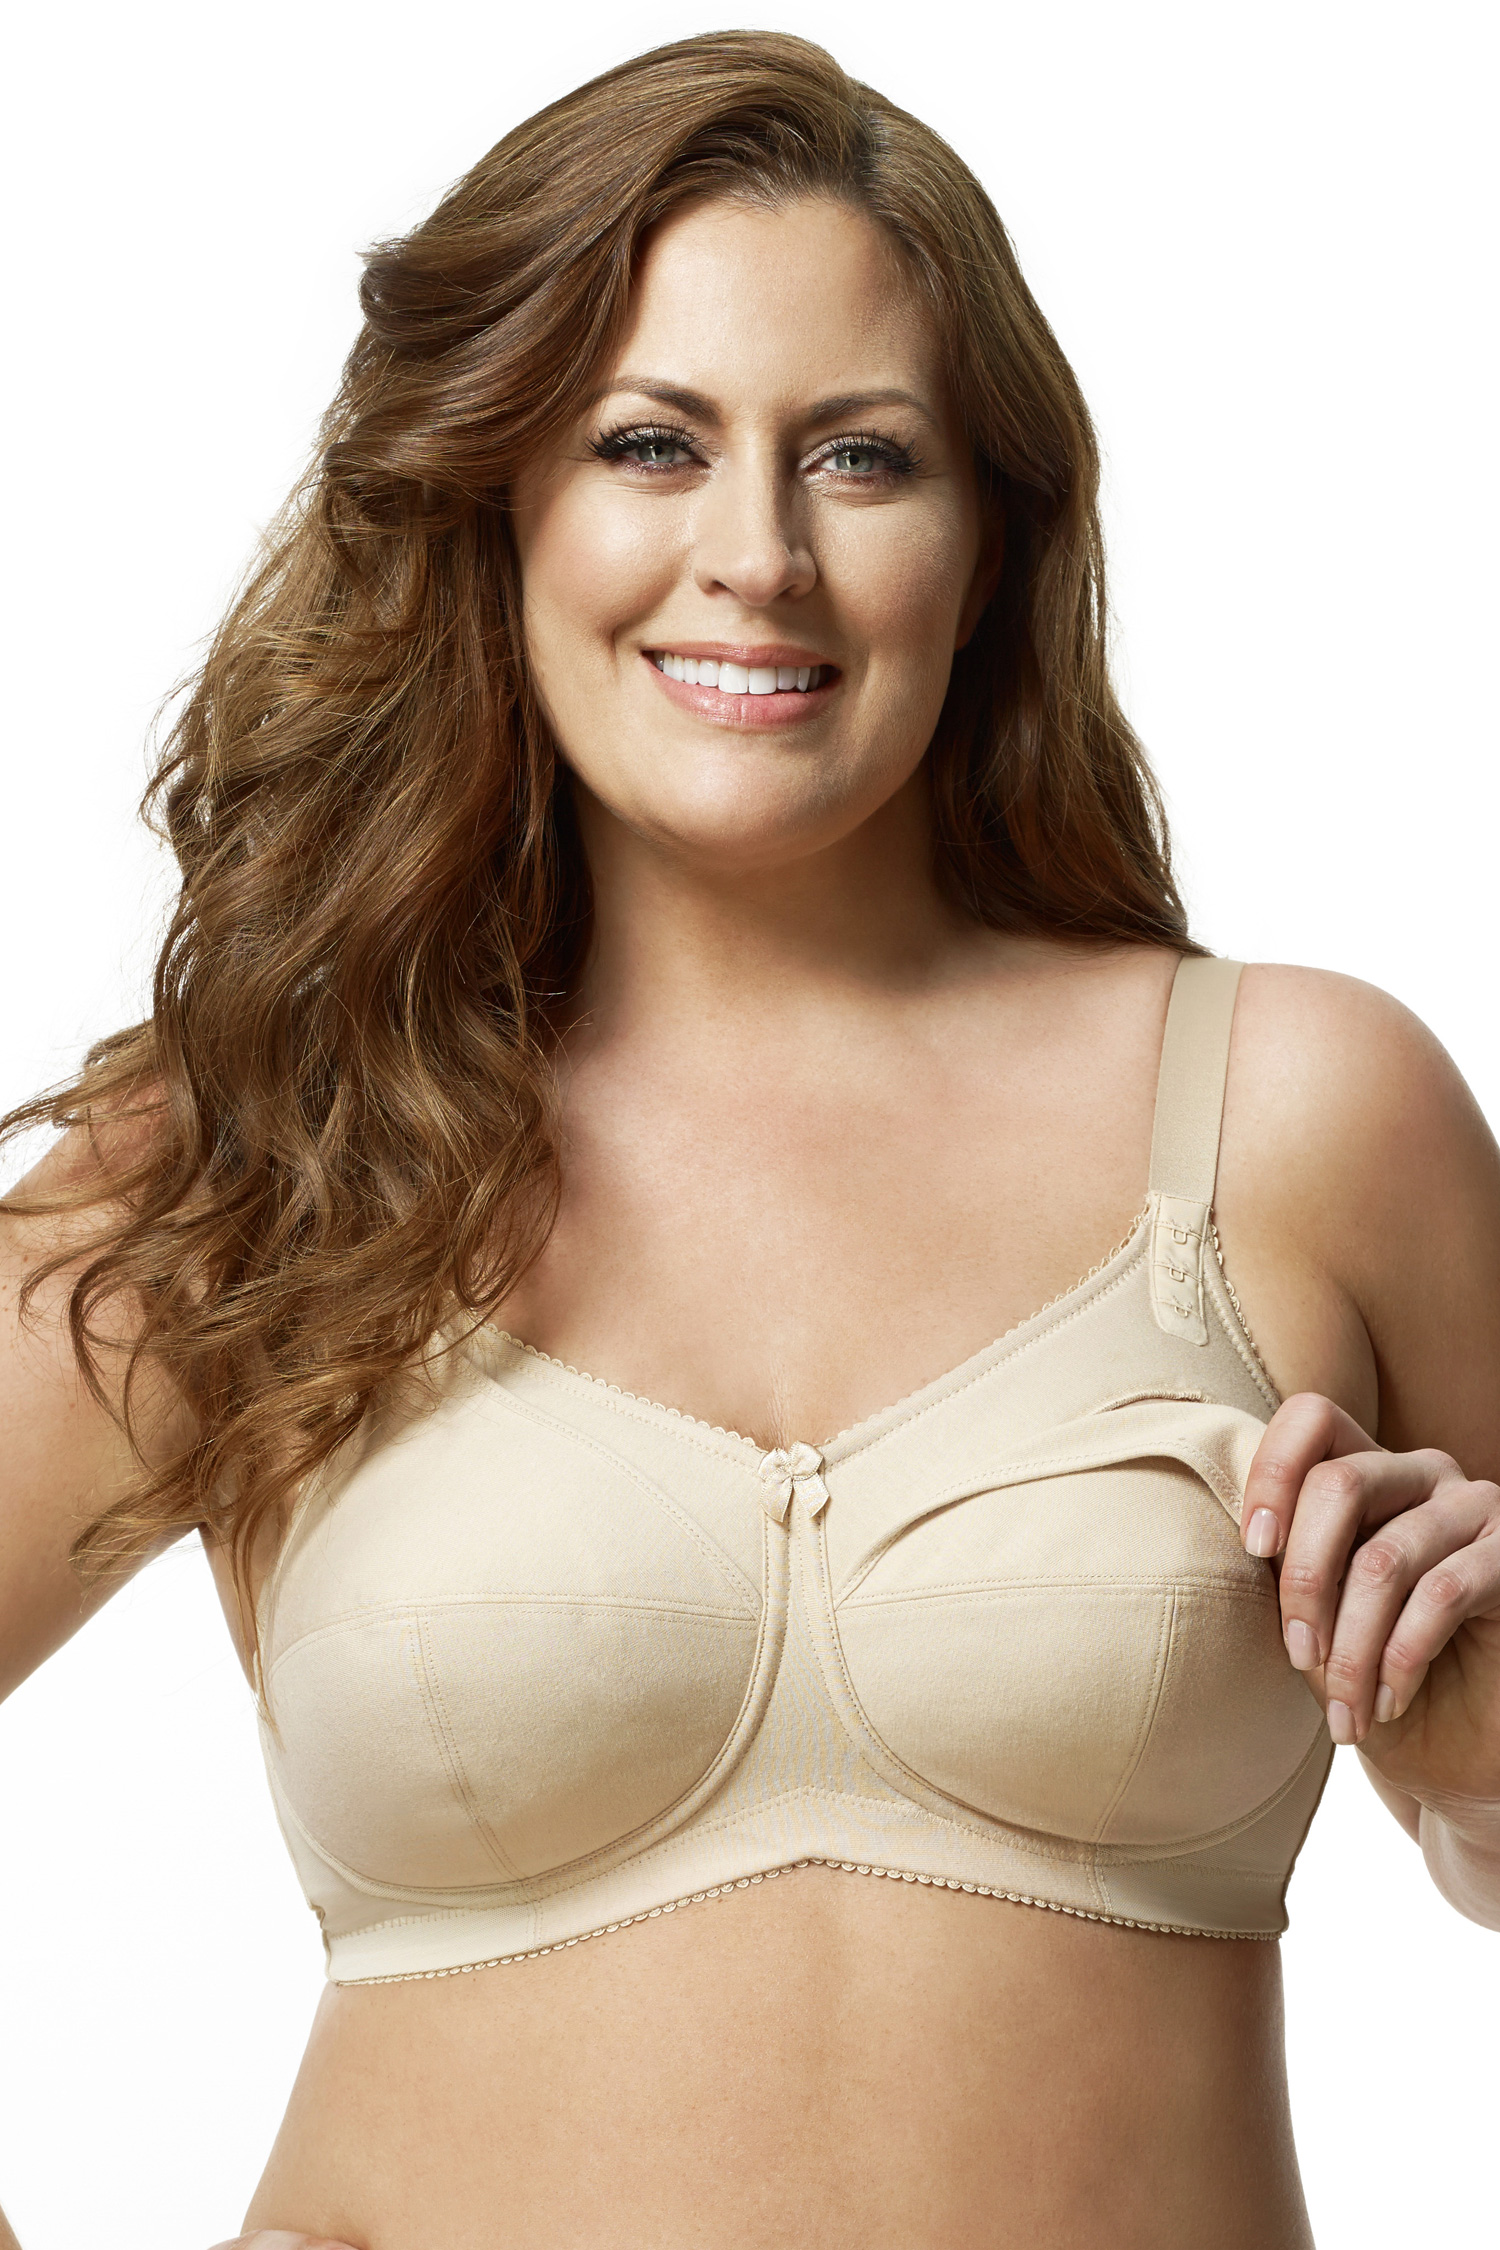 ELILA Cotton Nursing Bra Nude - 32 - L 1613